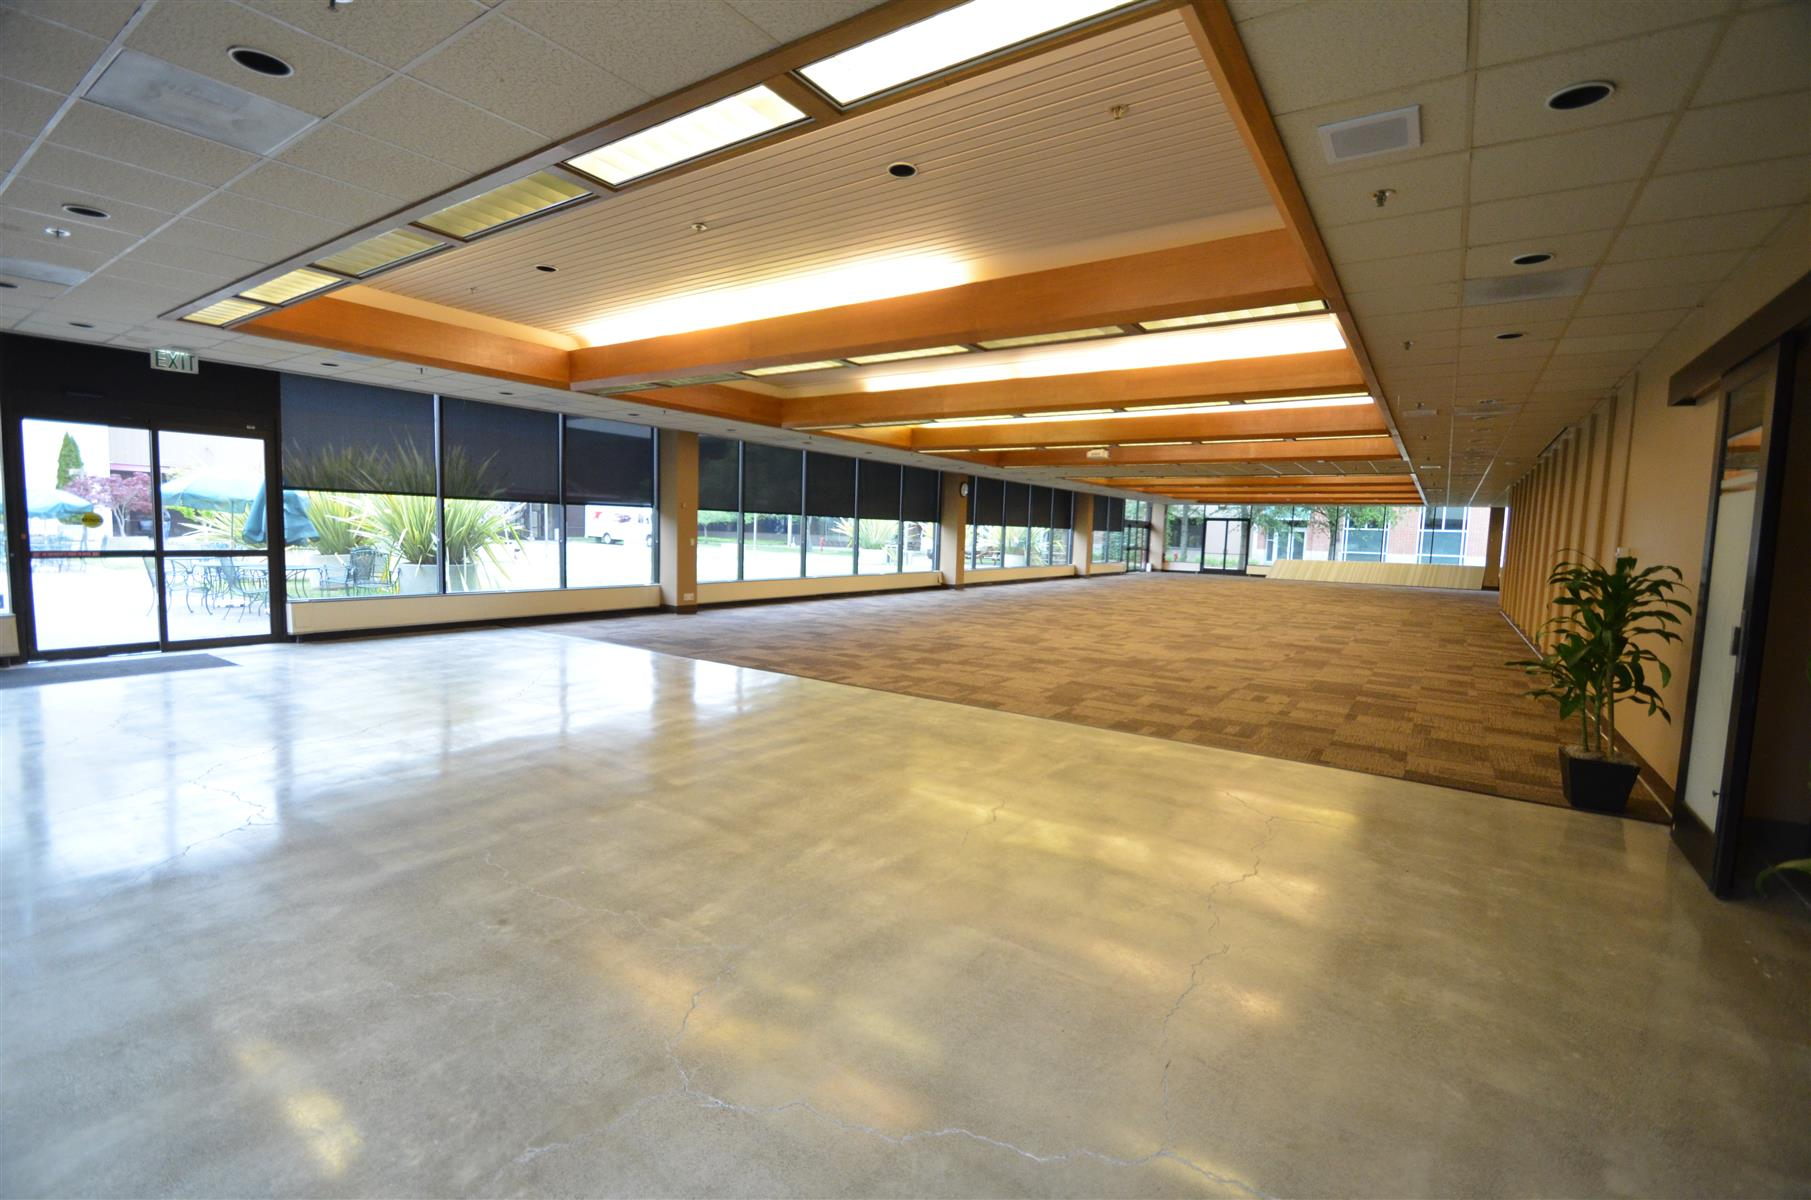 SOMO Village (1100 Valley House Drive) - Event Center - Plaza Room